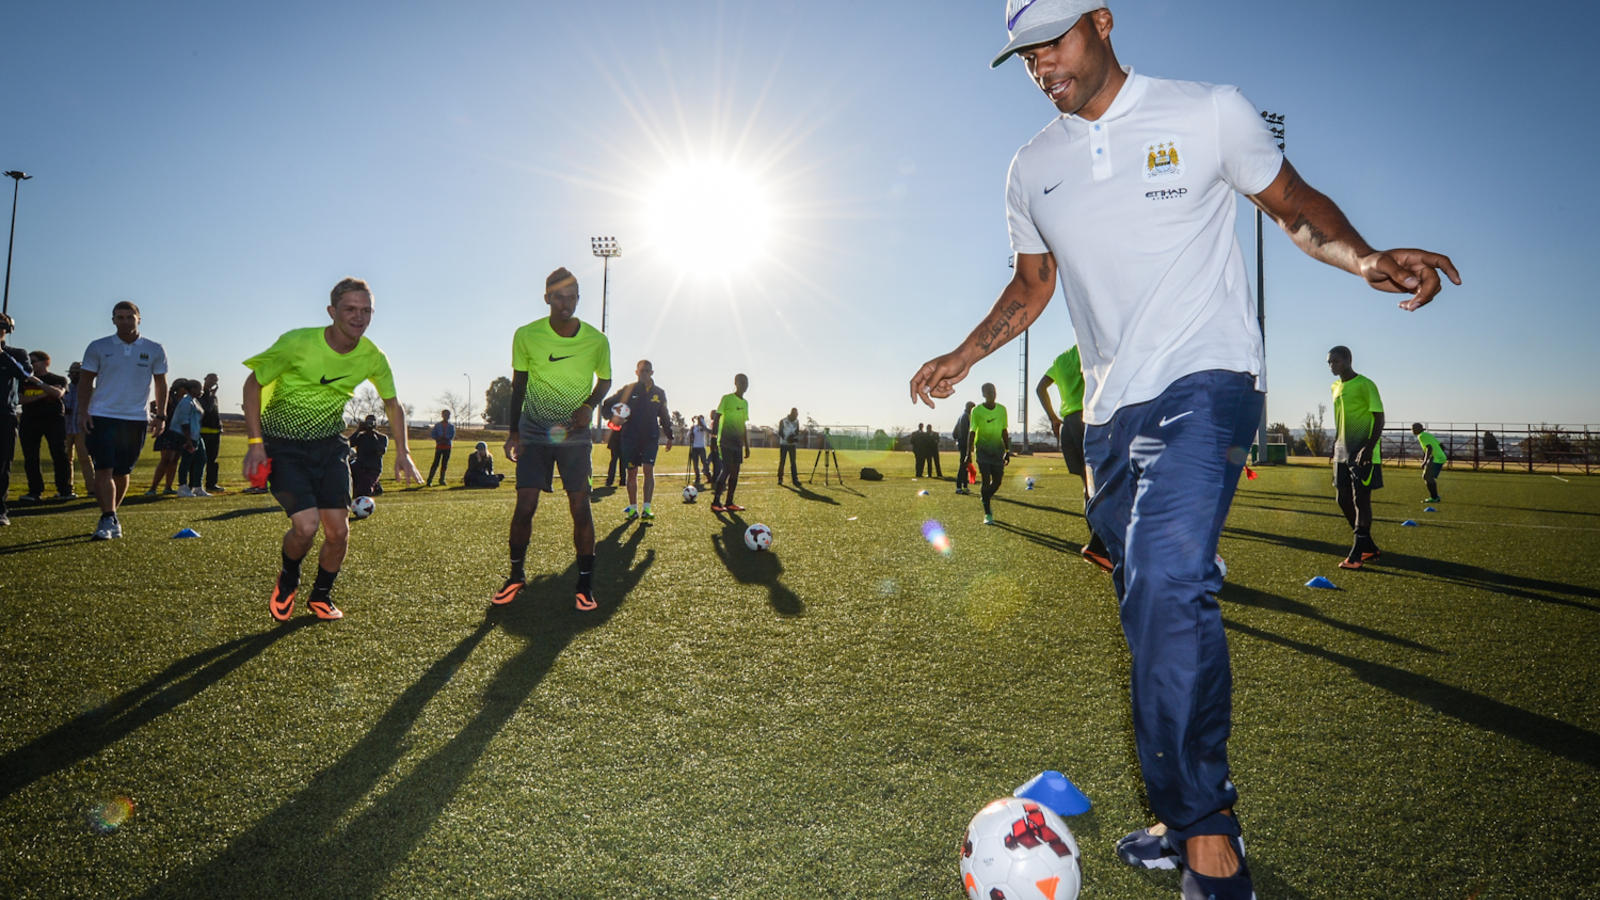 Lescott in training with young footballers